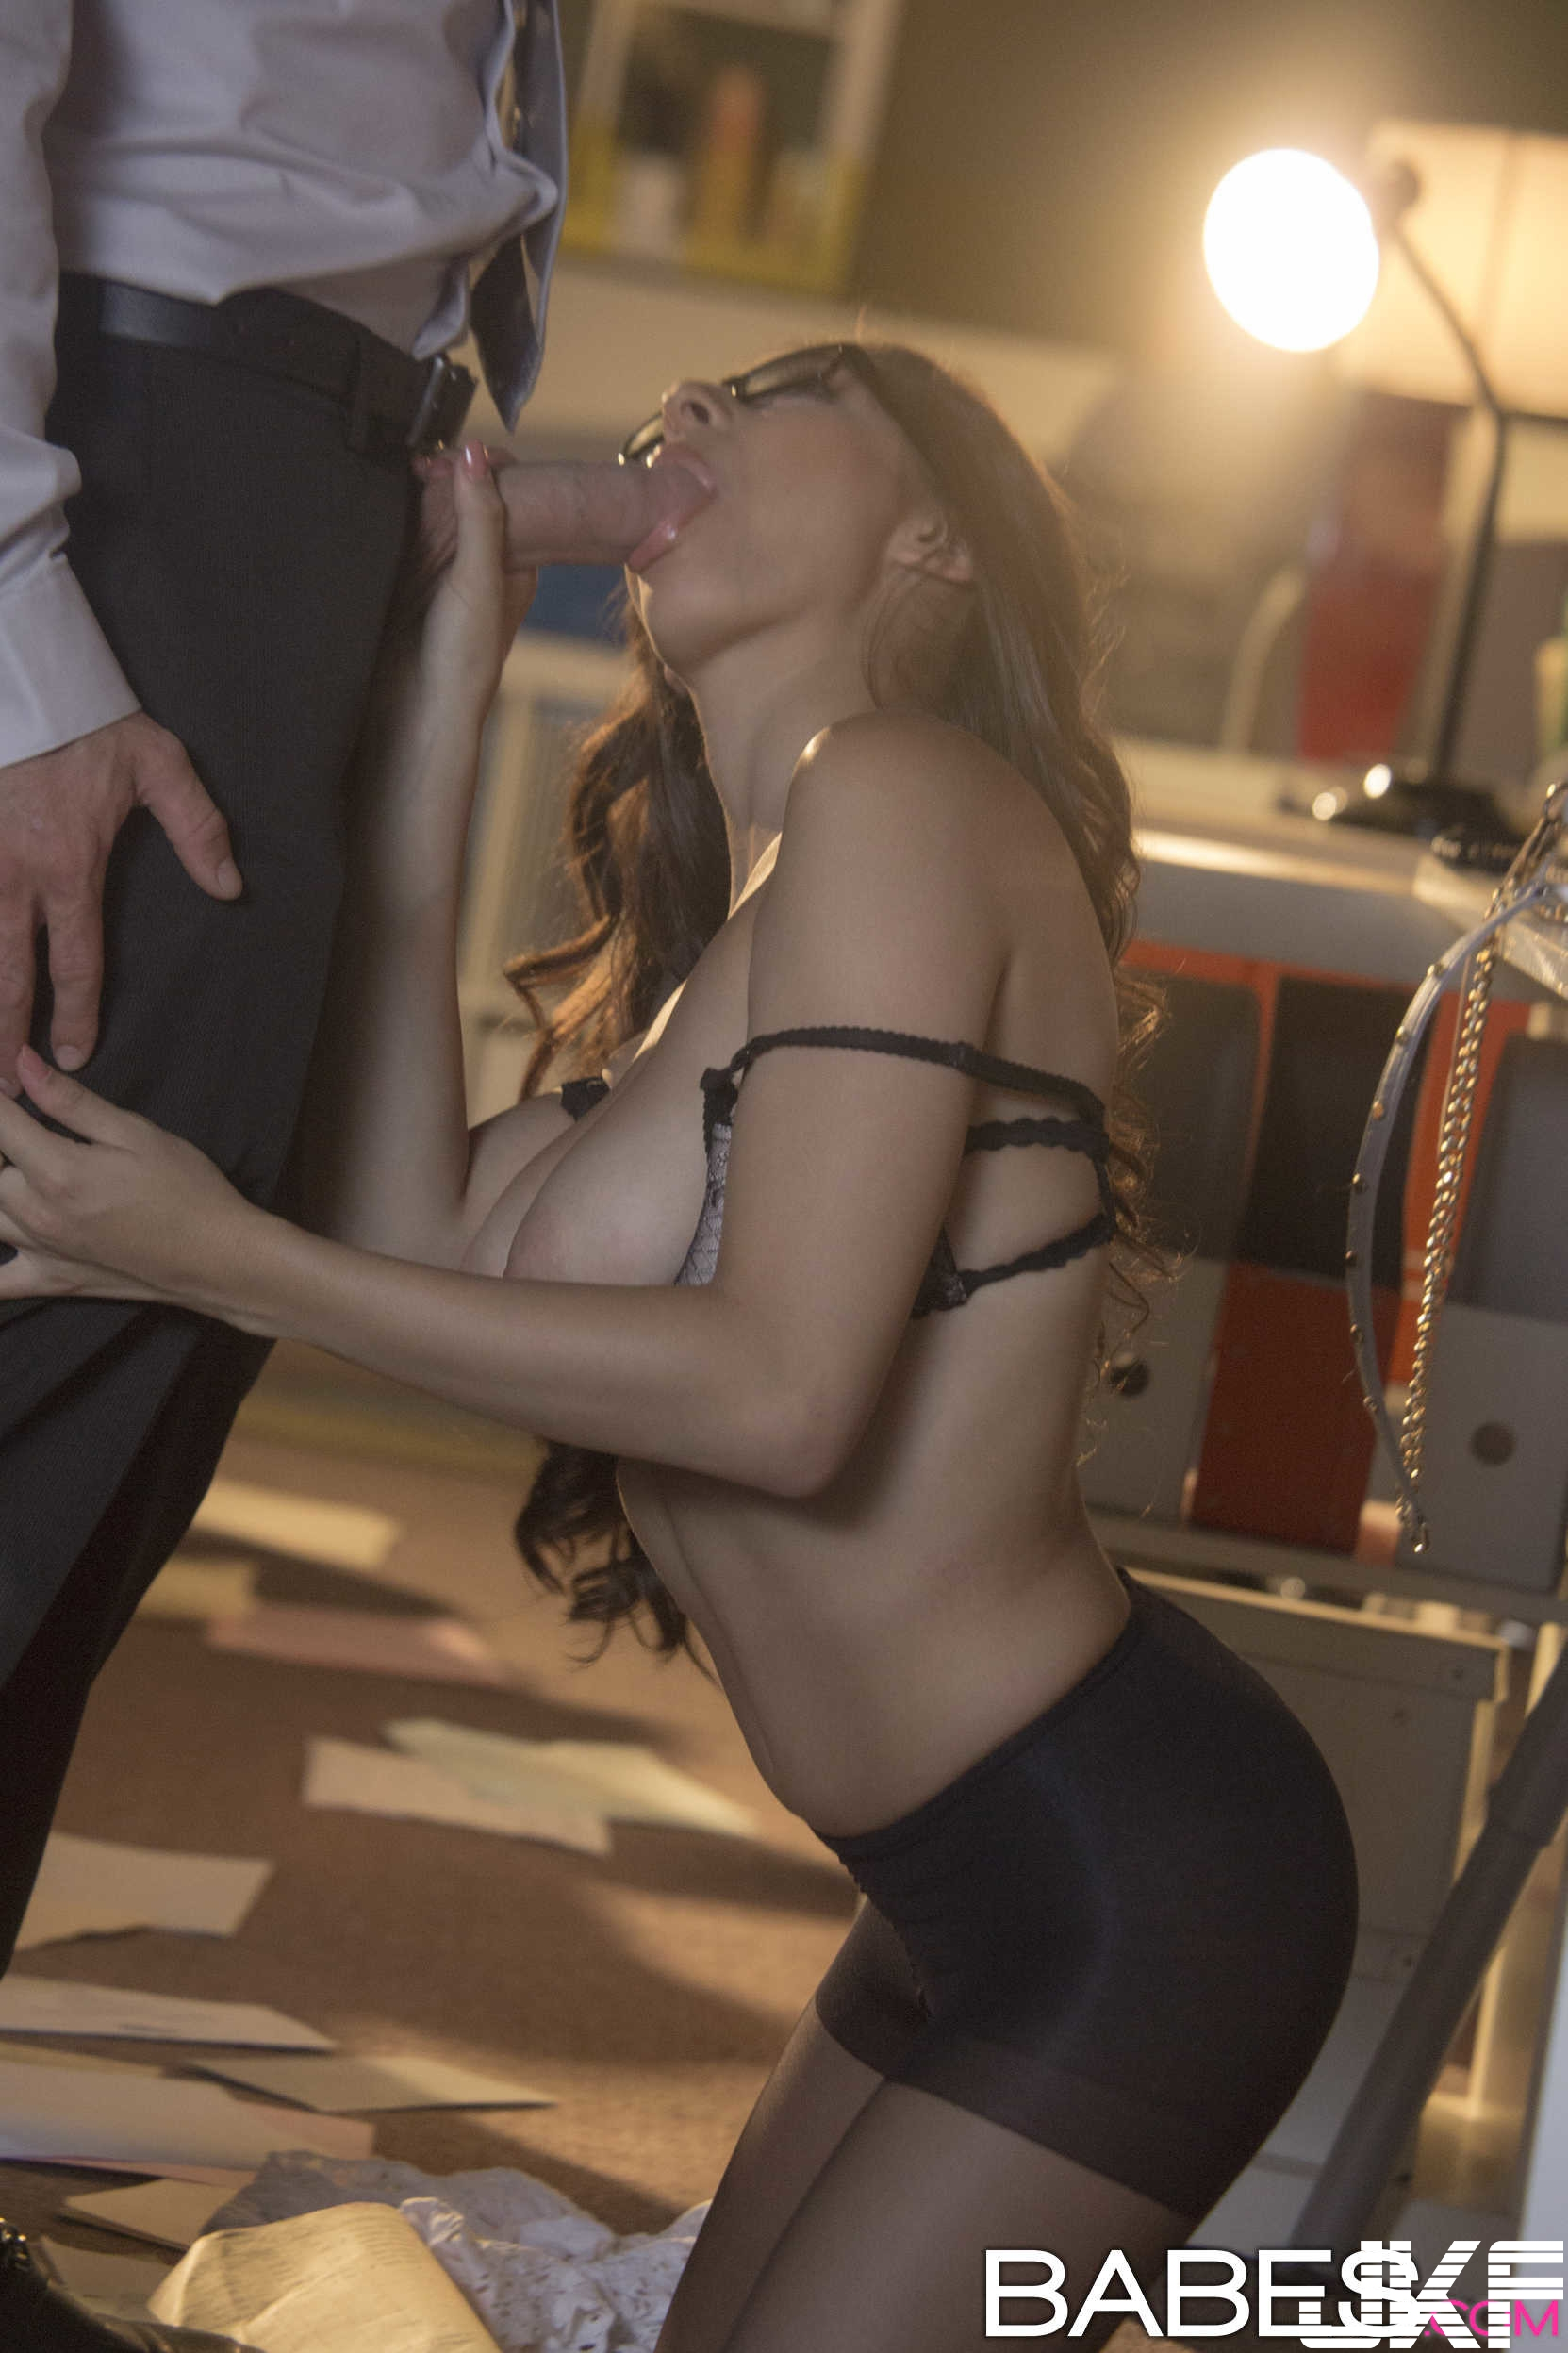 Shaved-Brunette-Nina-North-Wearing-Garter-Belt-in-Office-Giving-Blowjob-1.jpg